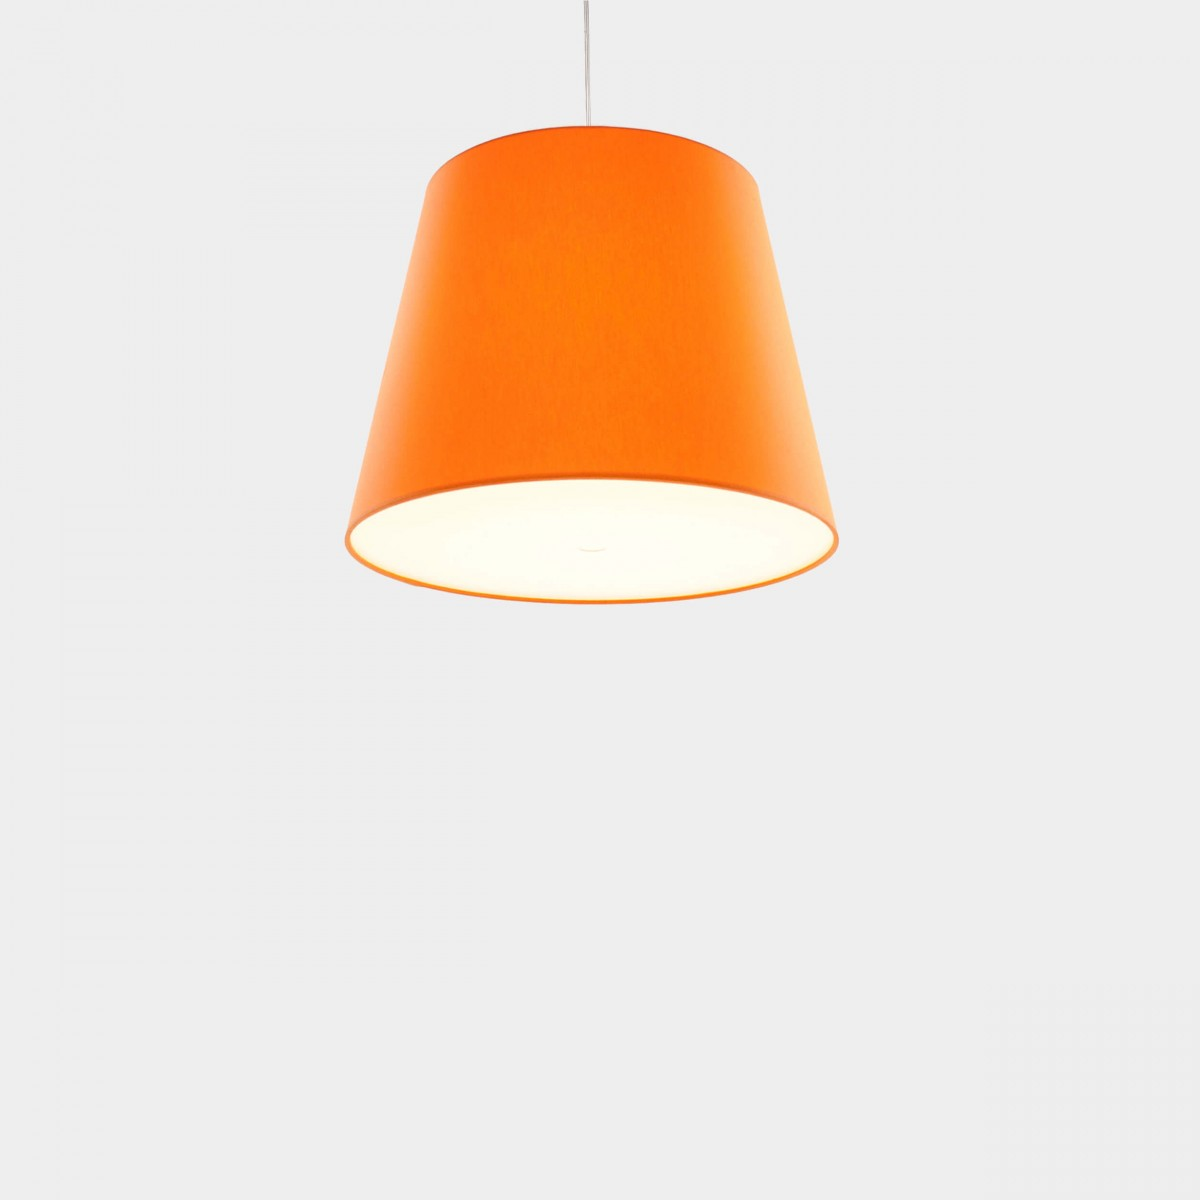 frauMaier Single SmallCluster Orange - an